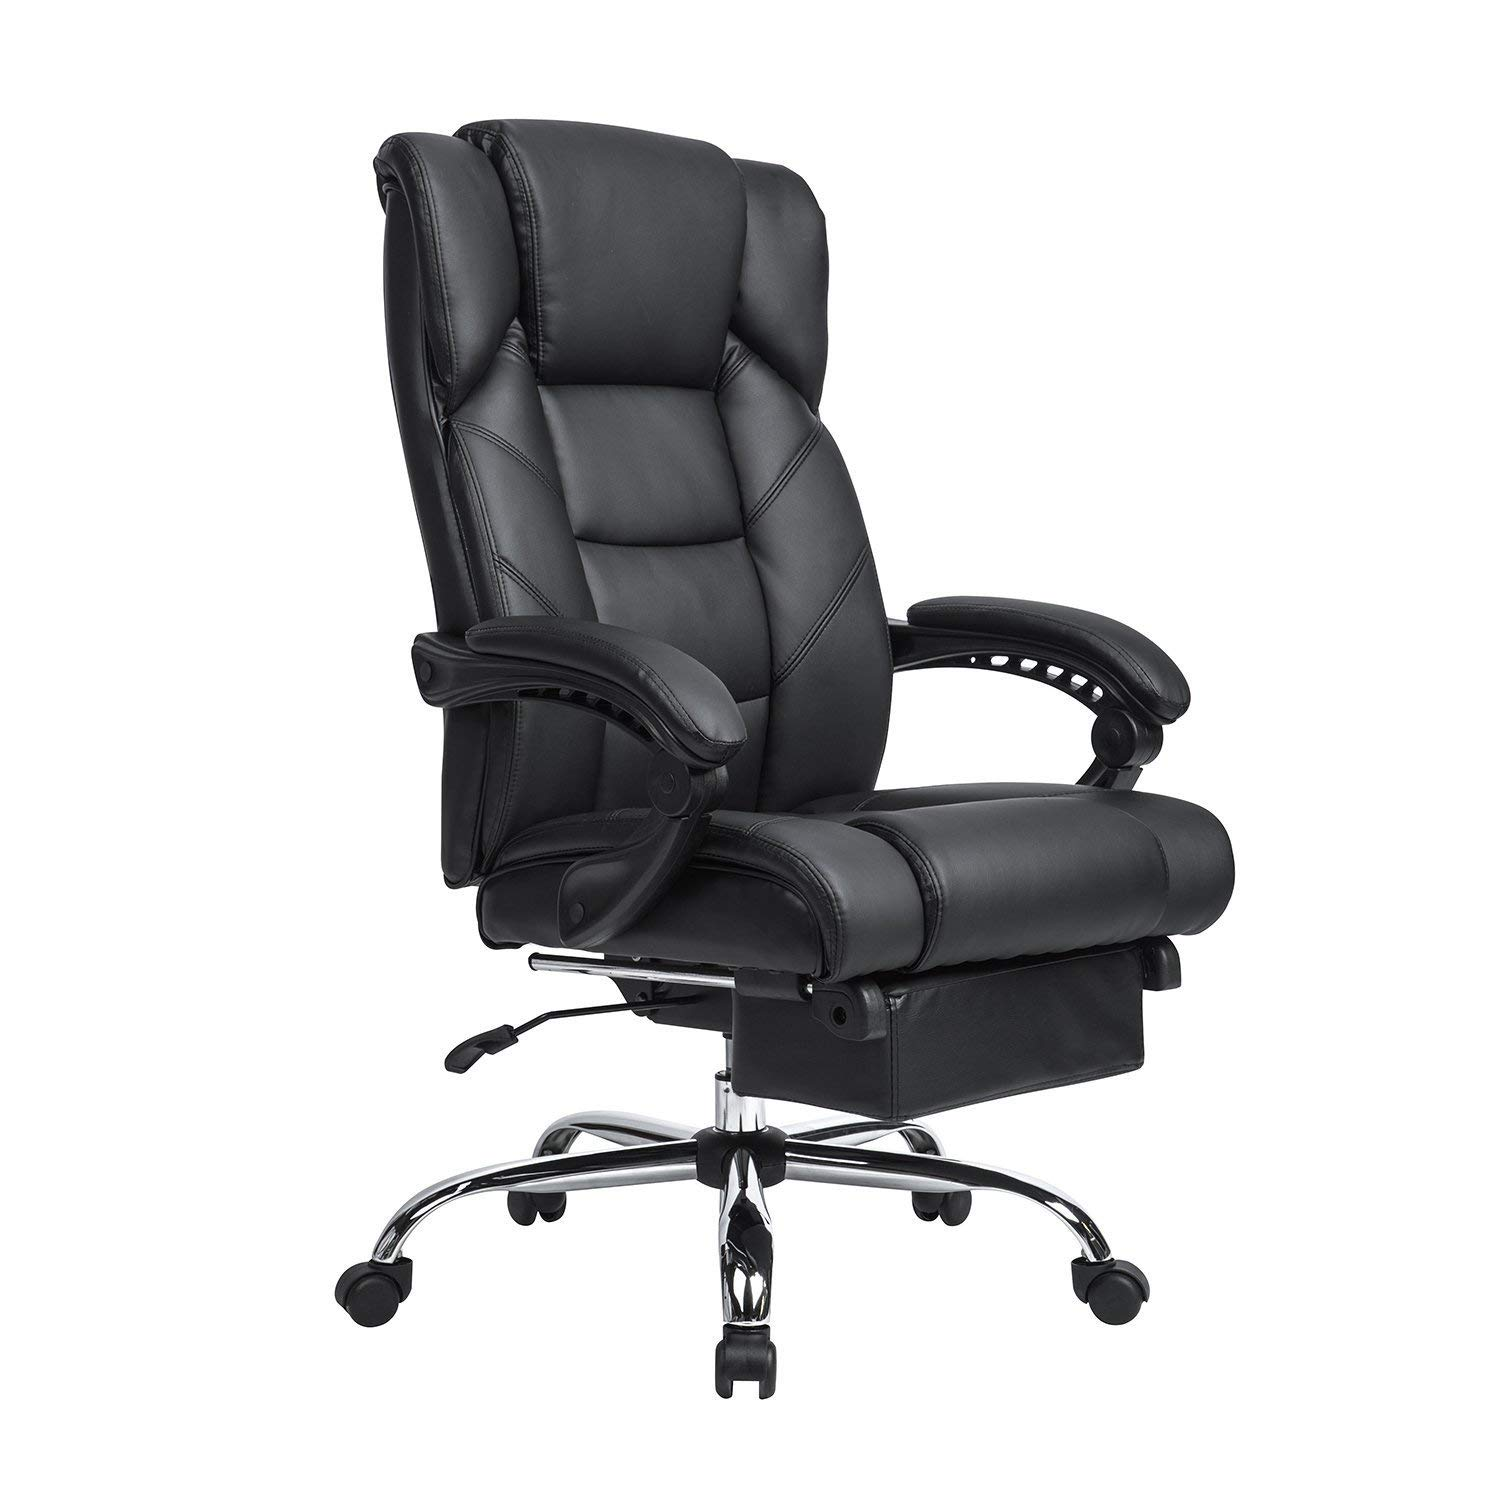 Best Ergonomic Office Chair Today S Best Office Chair Under 300 The Top Rated Office Chairs